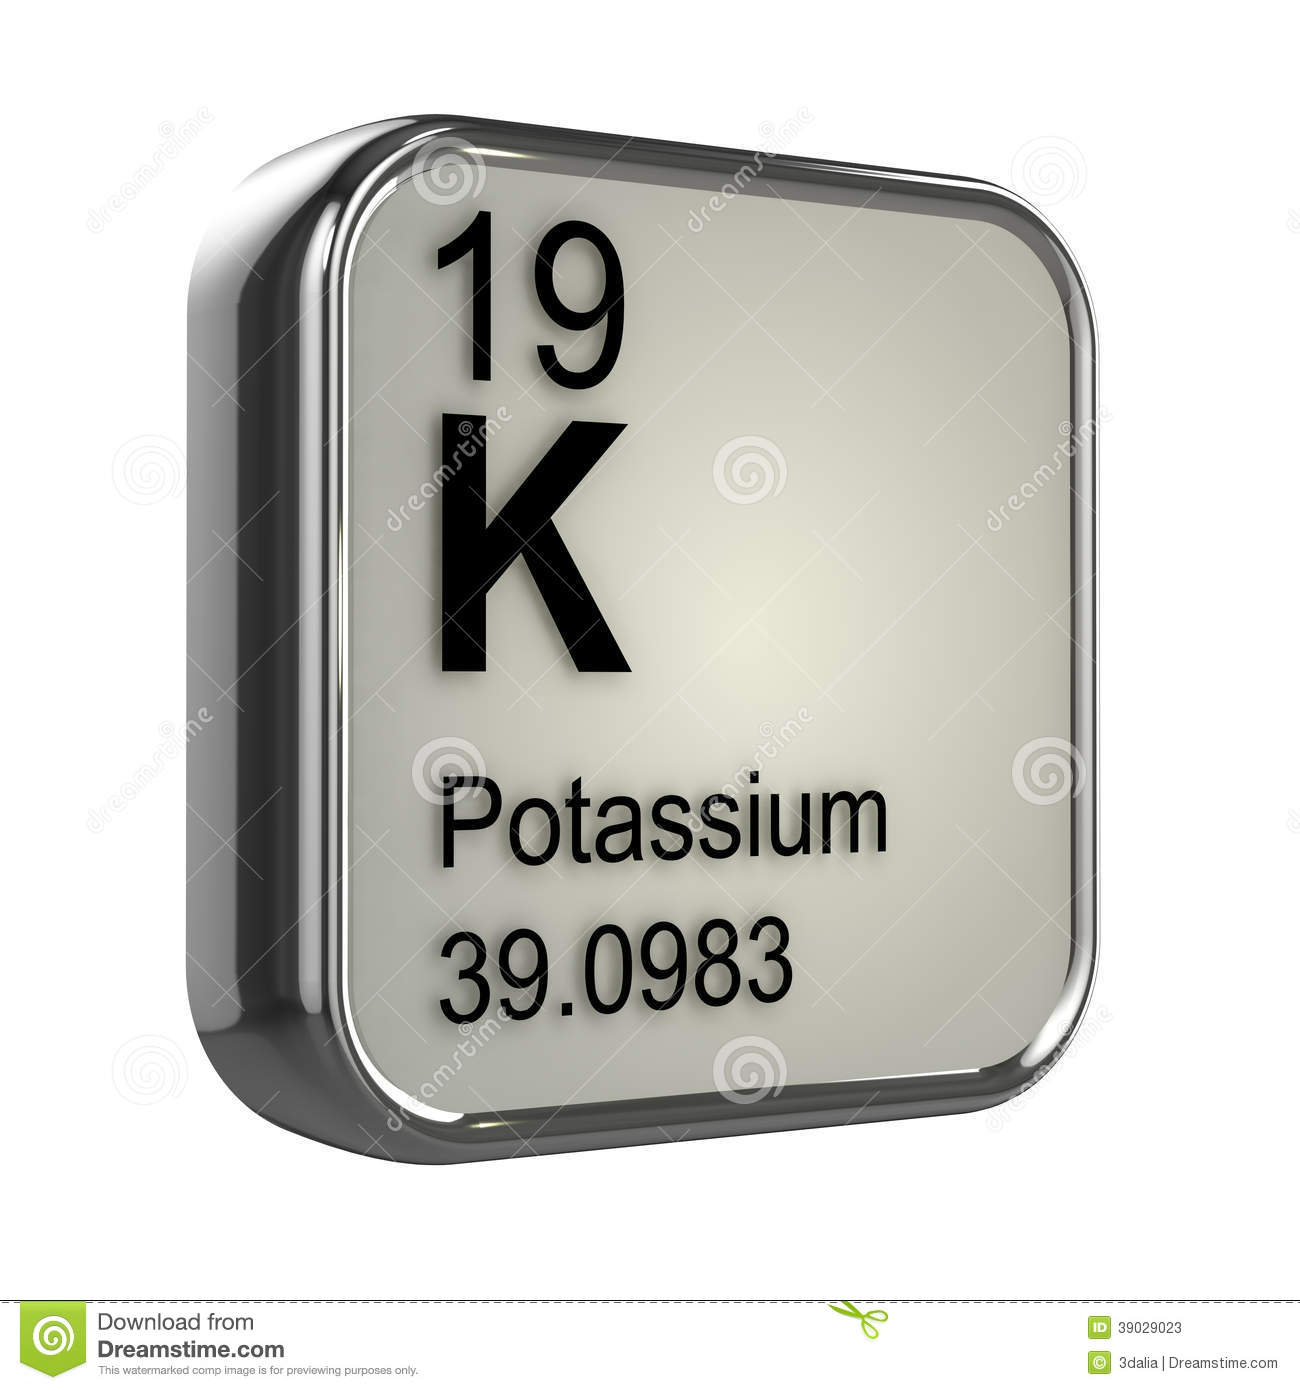 an analysis of potassium the chemical element Element groups: alkali metals  healthworld online - potassium contains an introduction to tungsten, among other things  chemical elementcom - potassium.